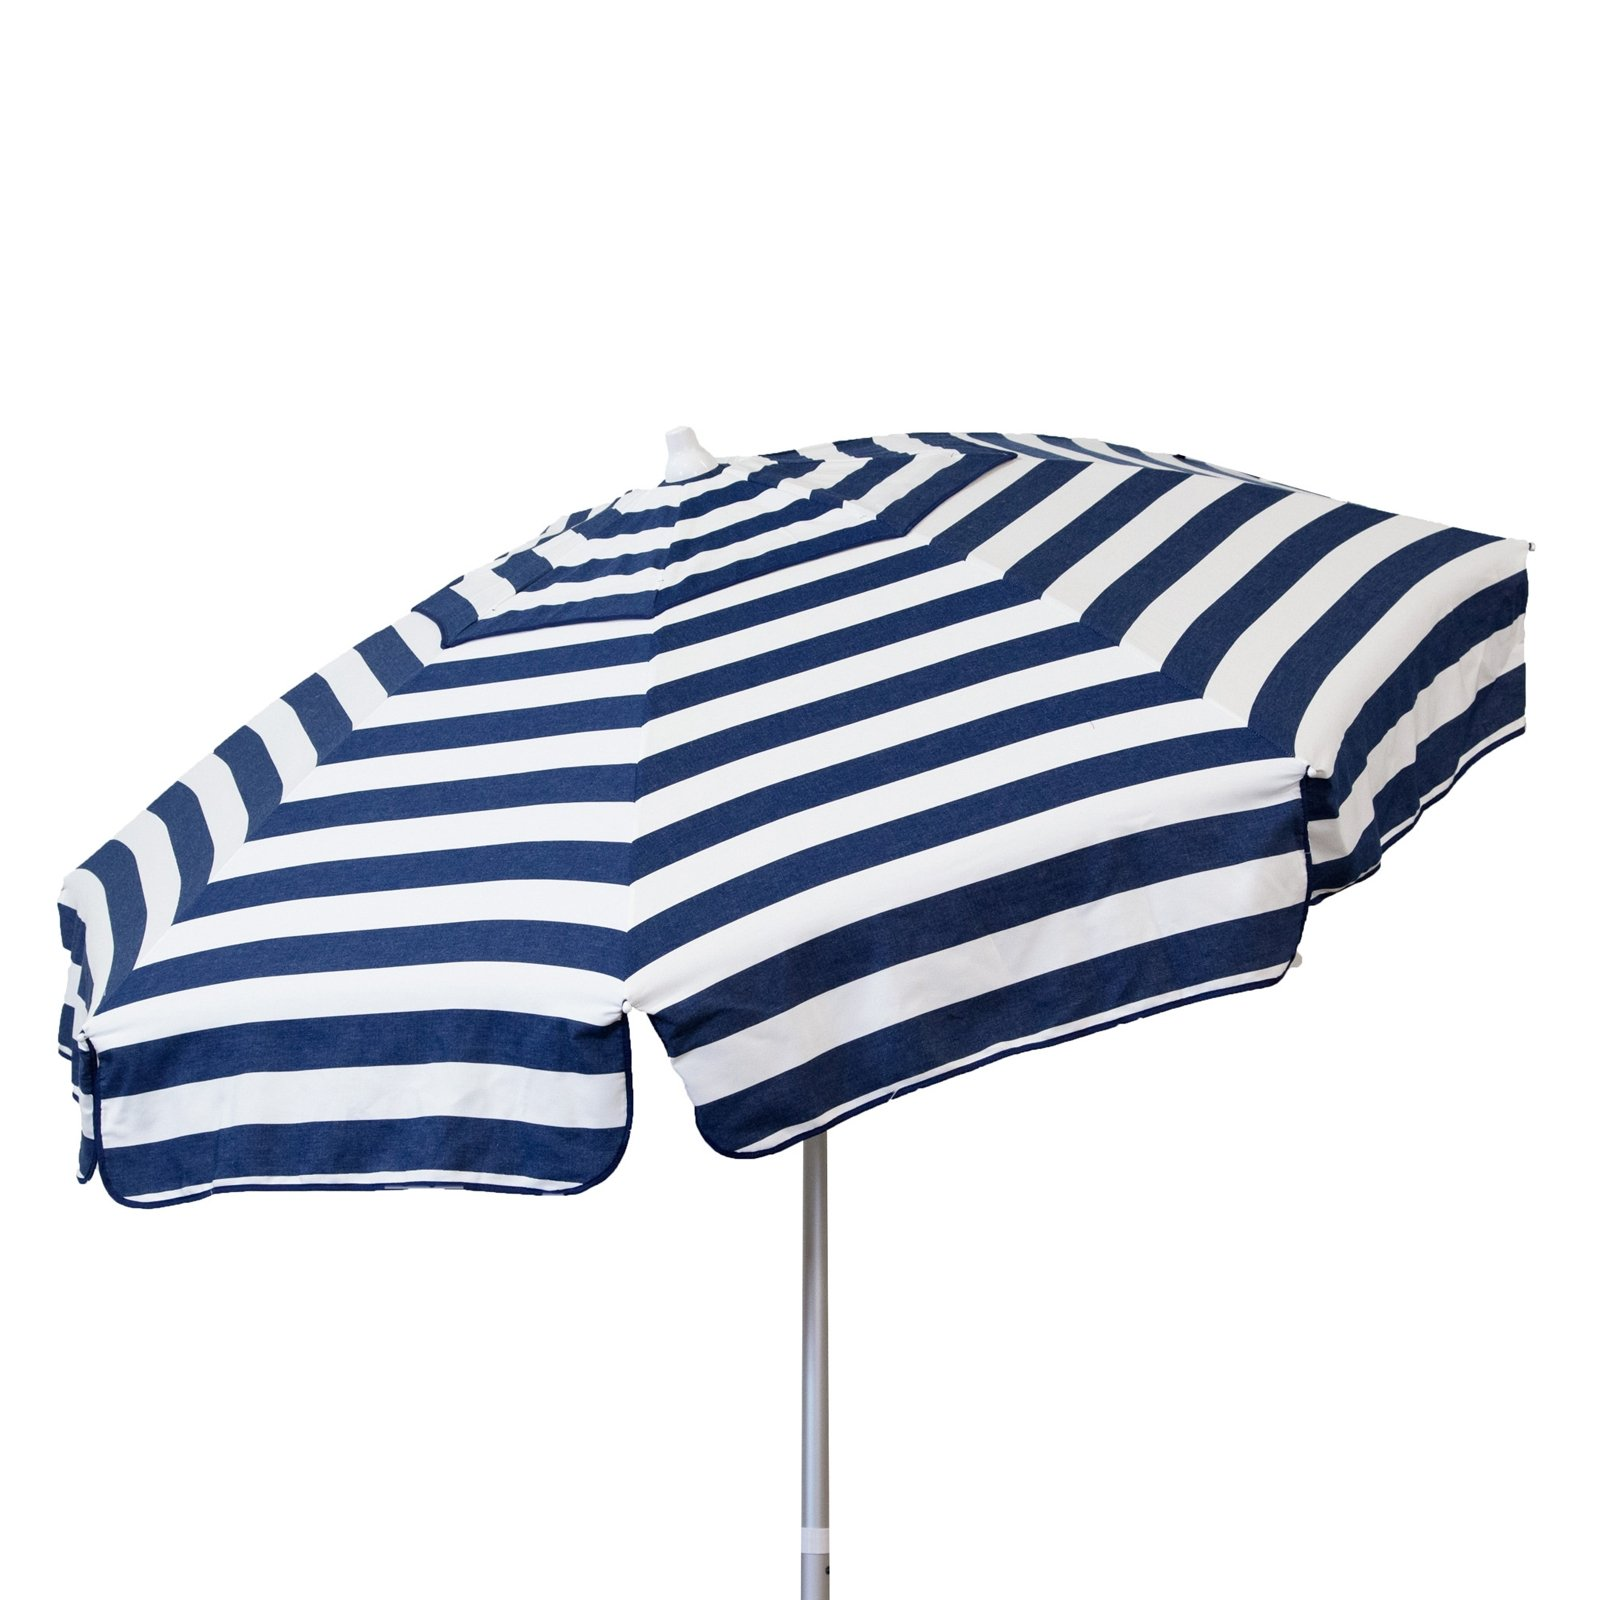 Italian 6 foot Push/Tilt Umbrella Acrylic Stripes Navy Blue and White - Beach Pole